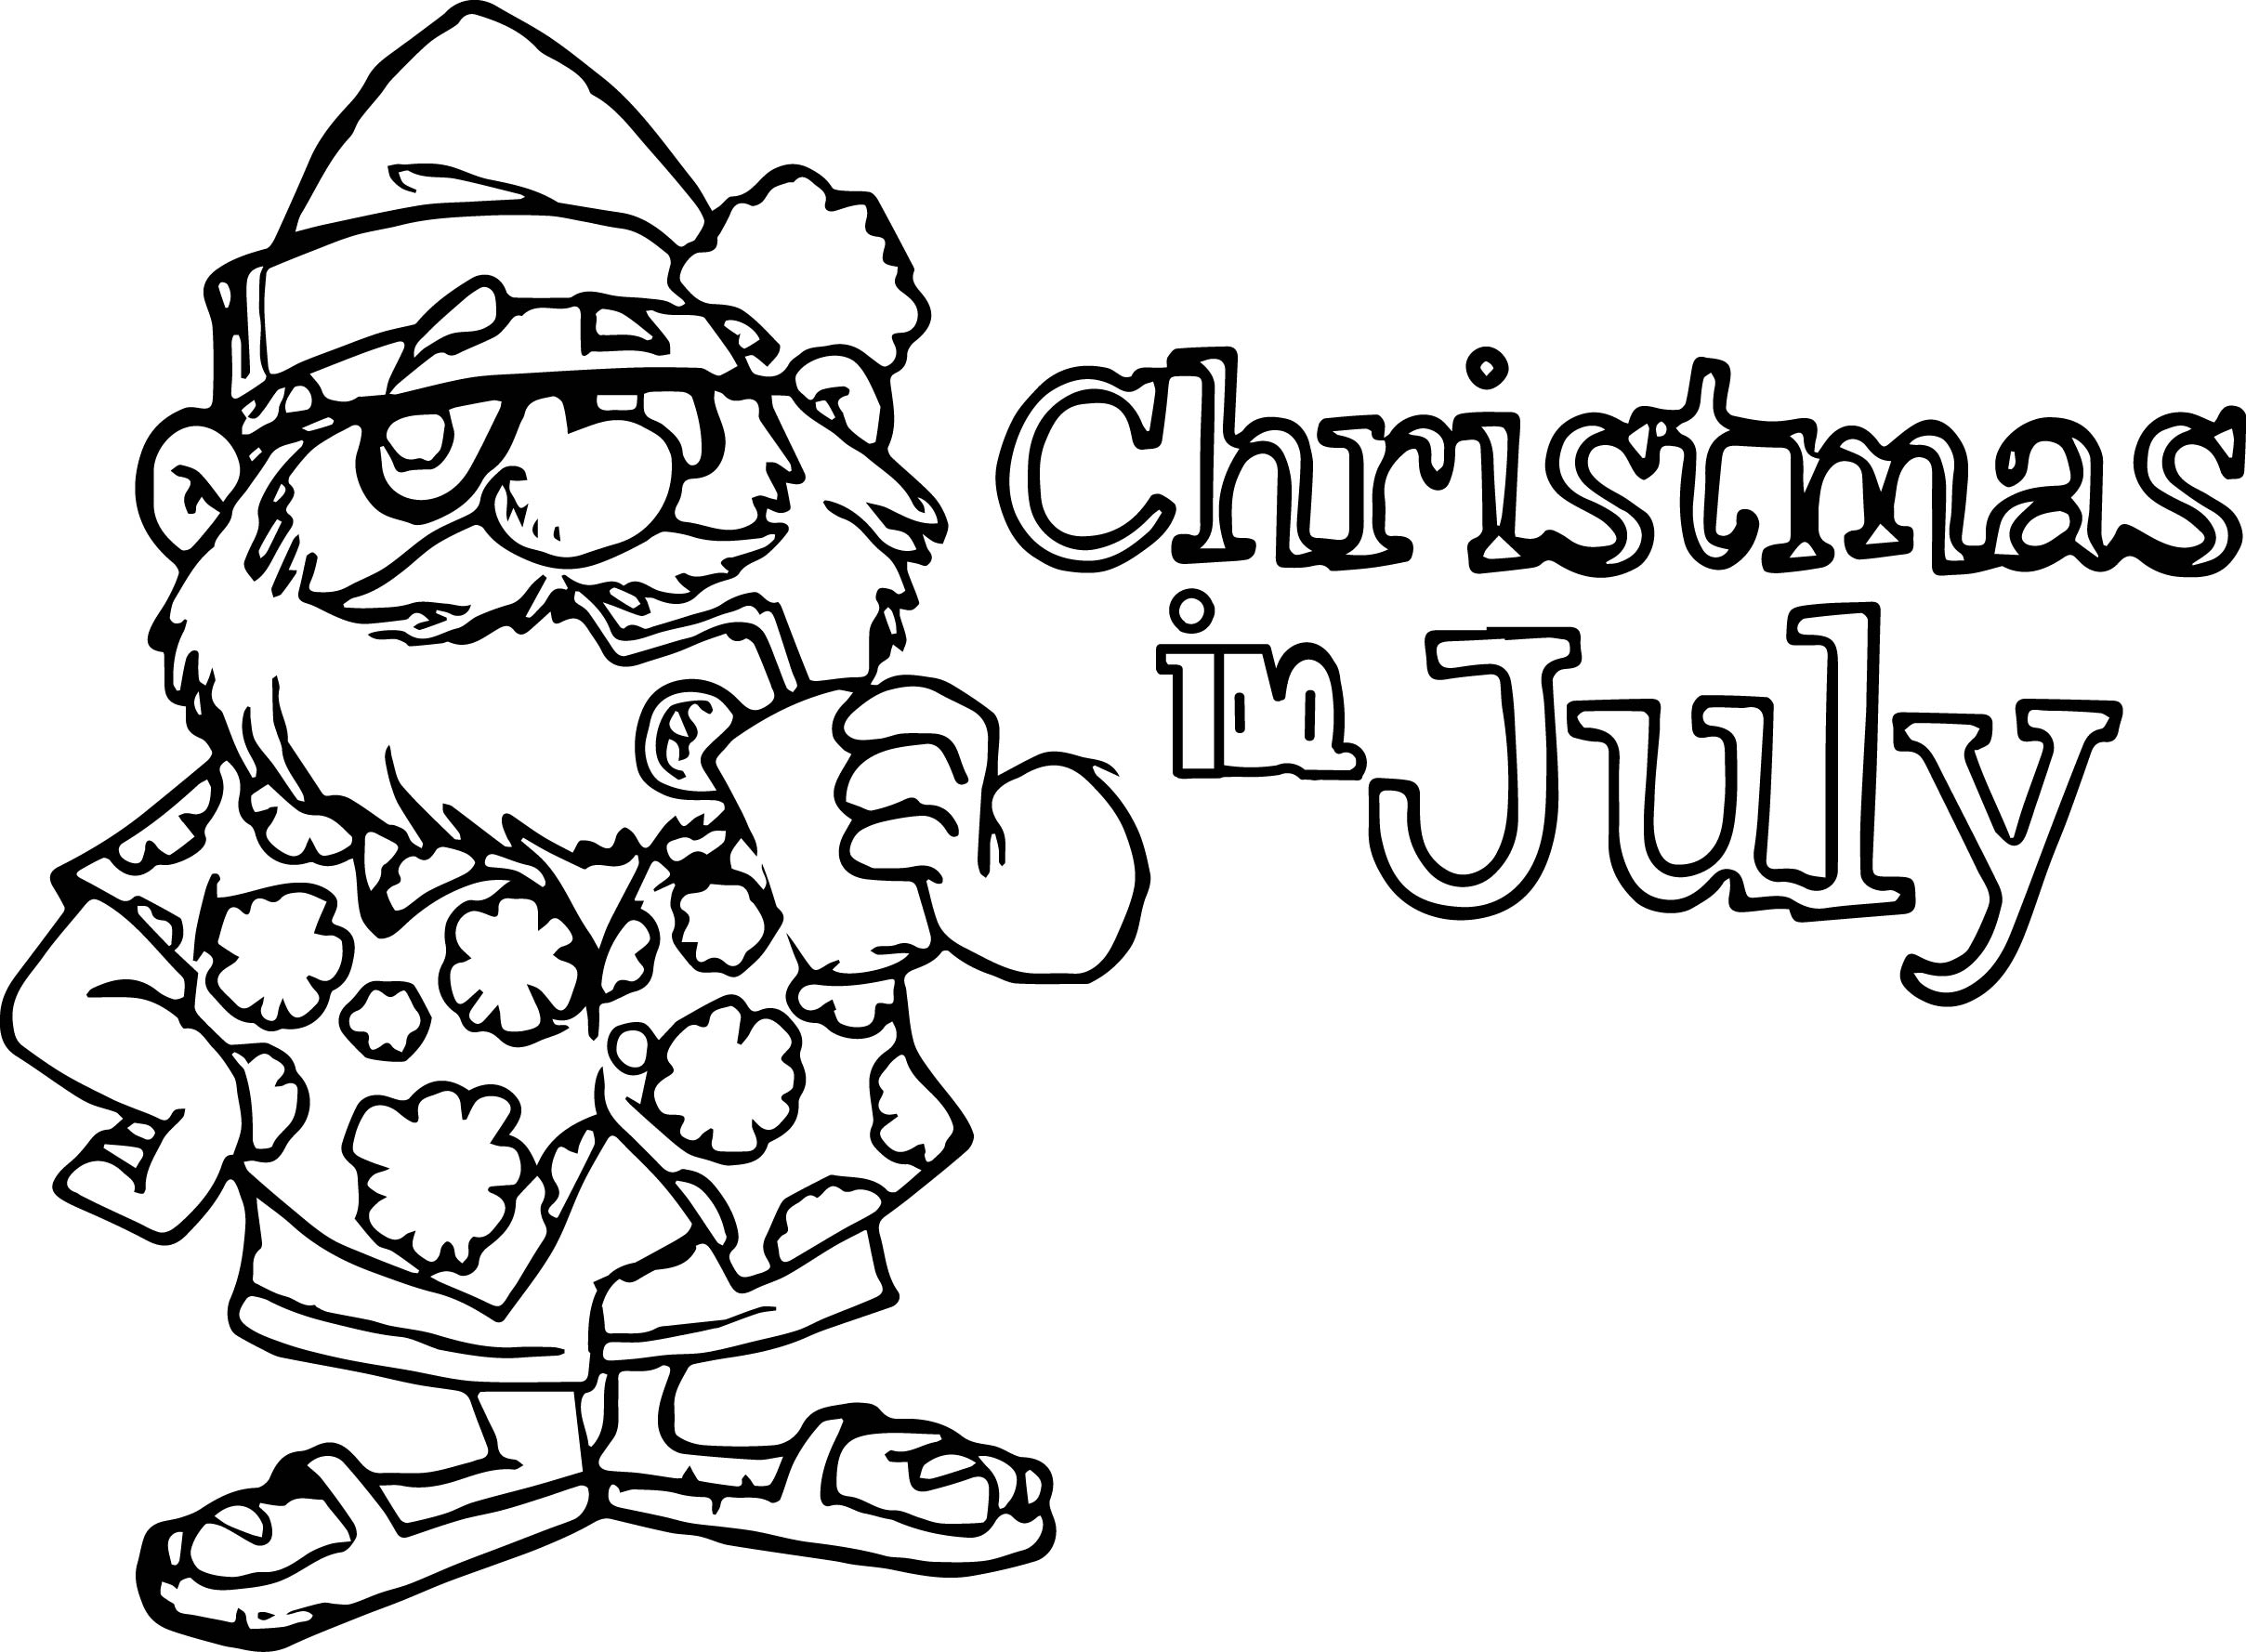 4th Of July Christmas In July Coloring Page